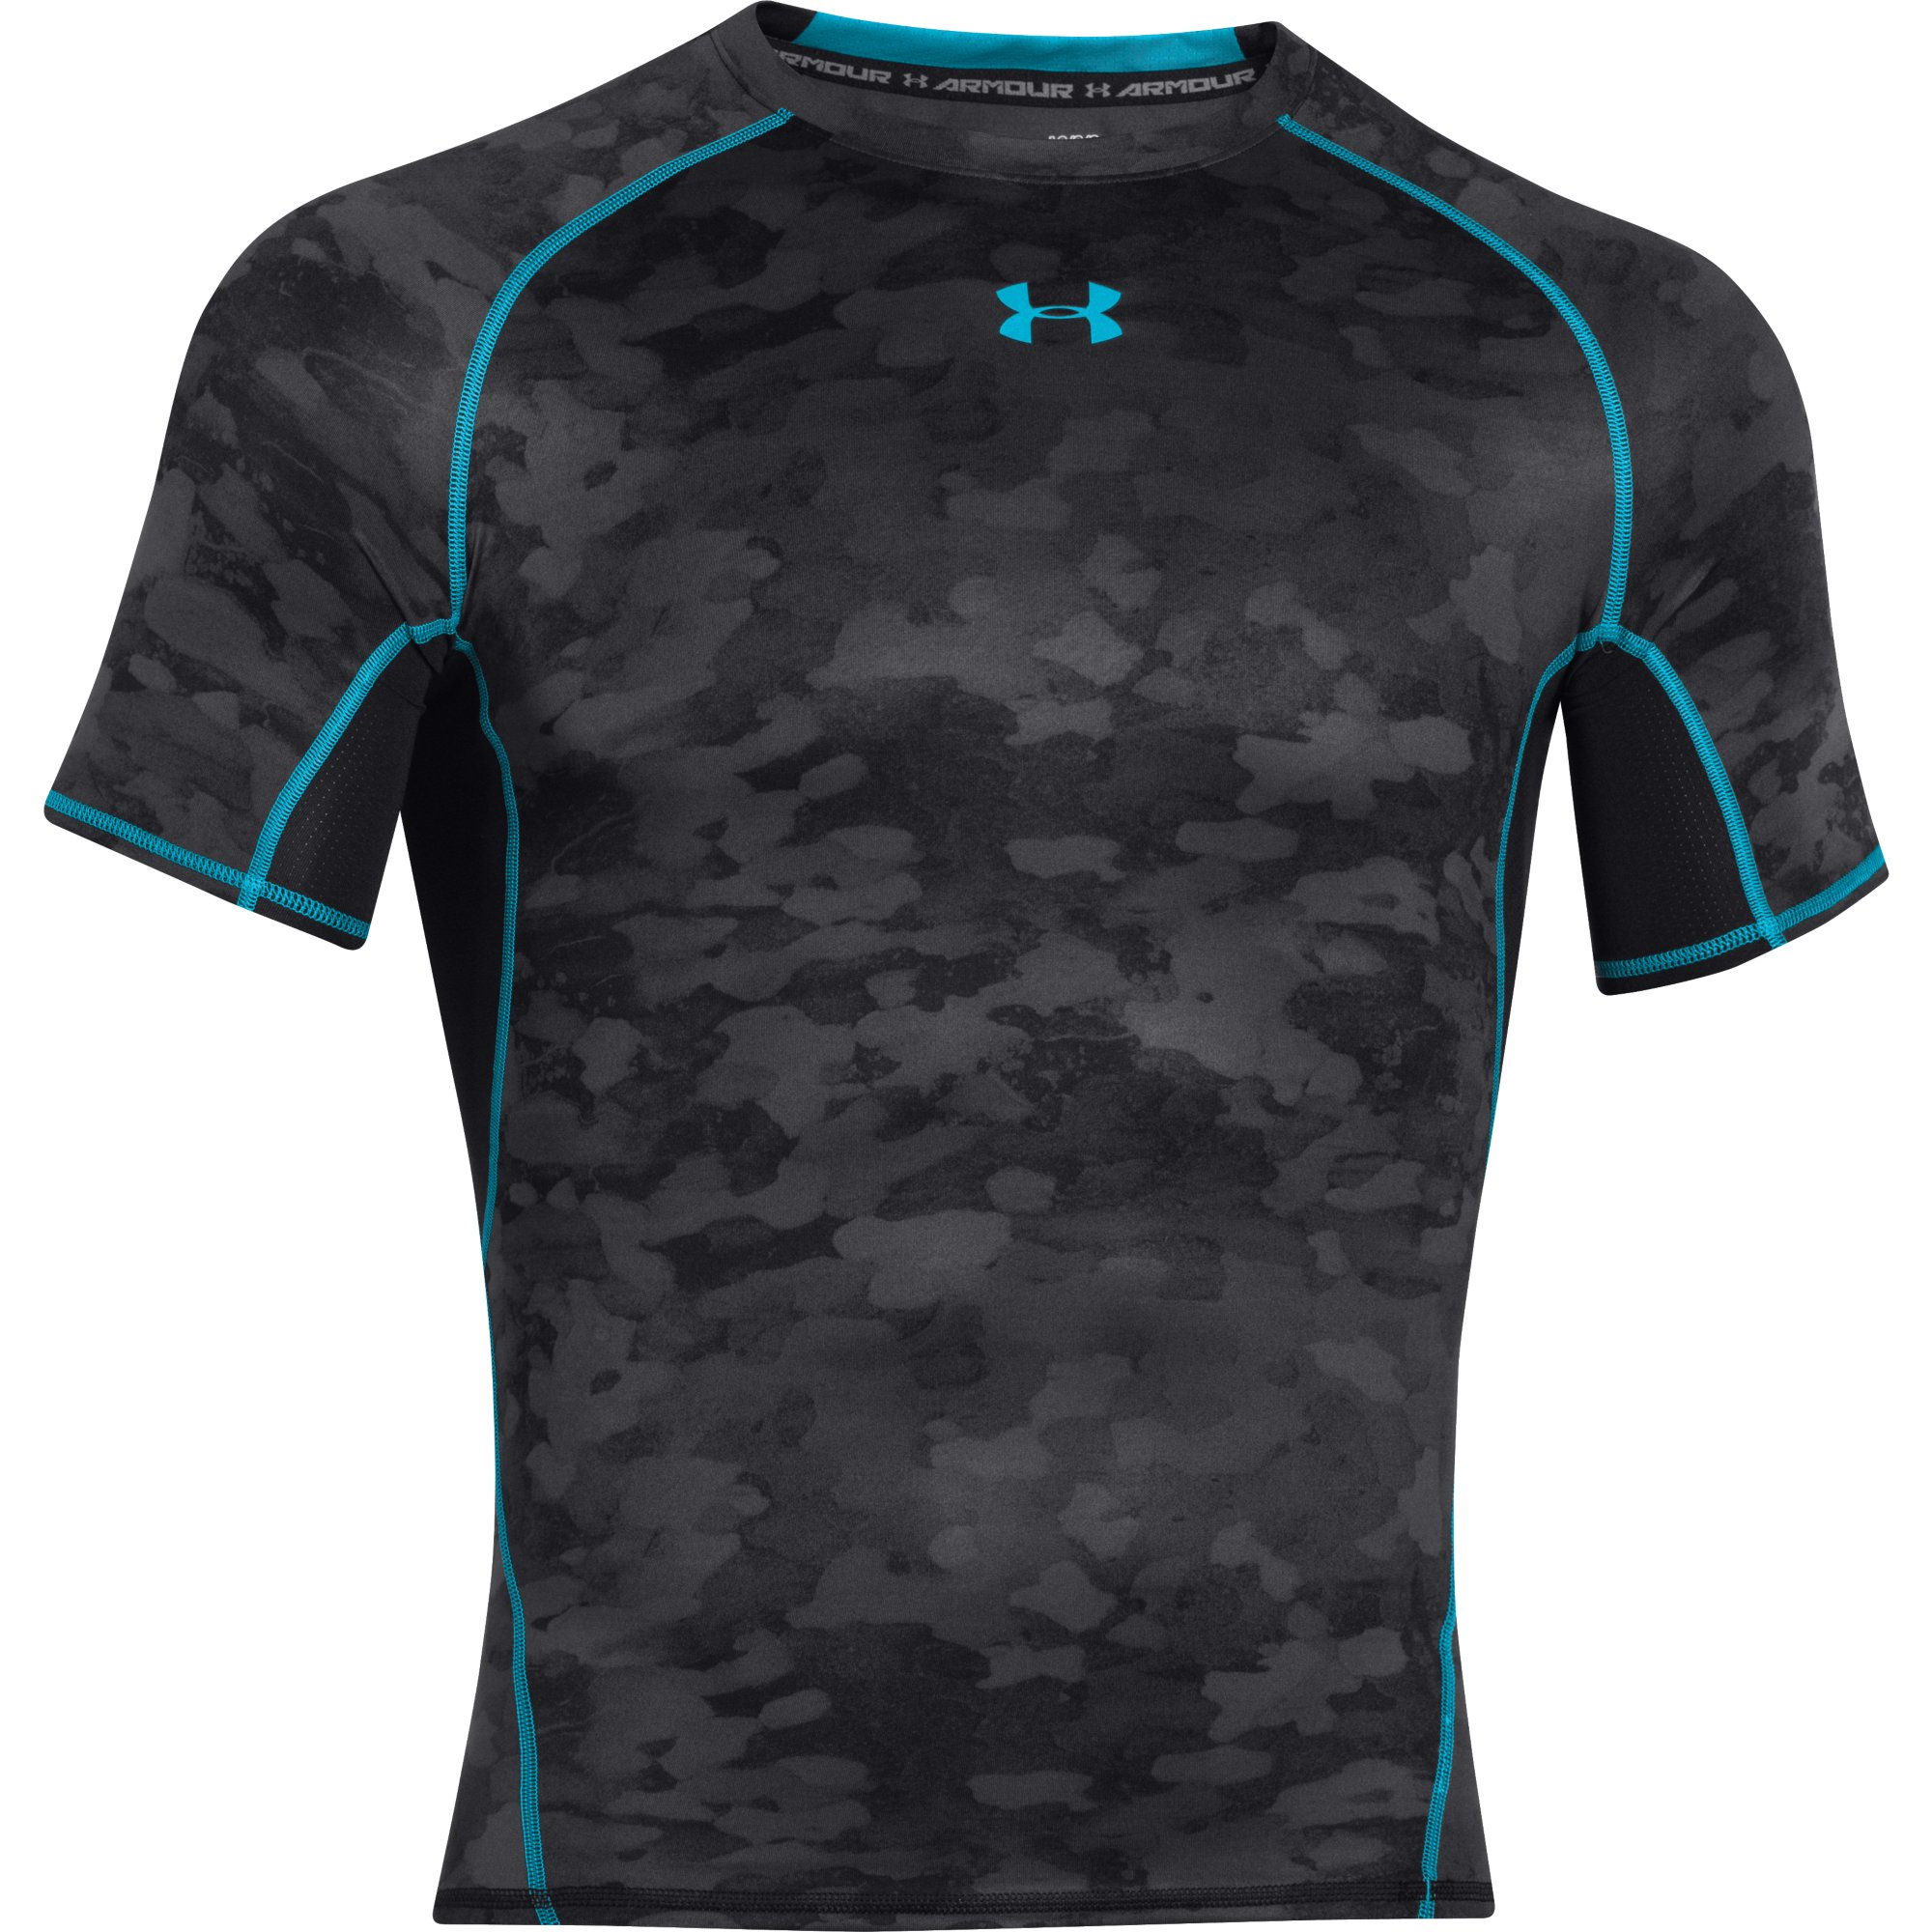 Under armour heatgear printed t shirt f s 15 for Under armour printed t shirts